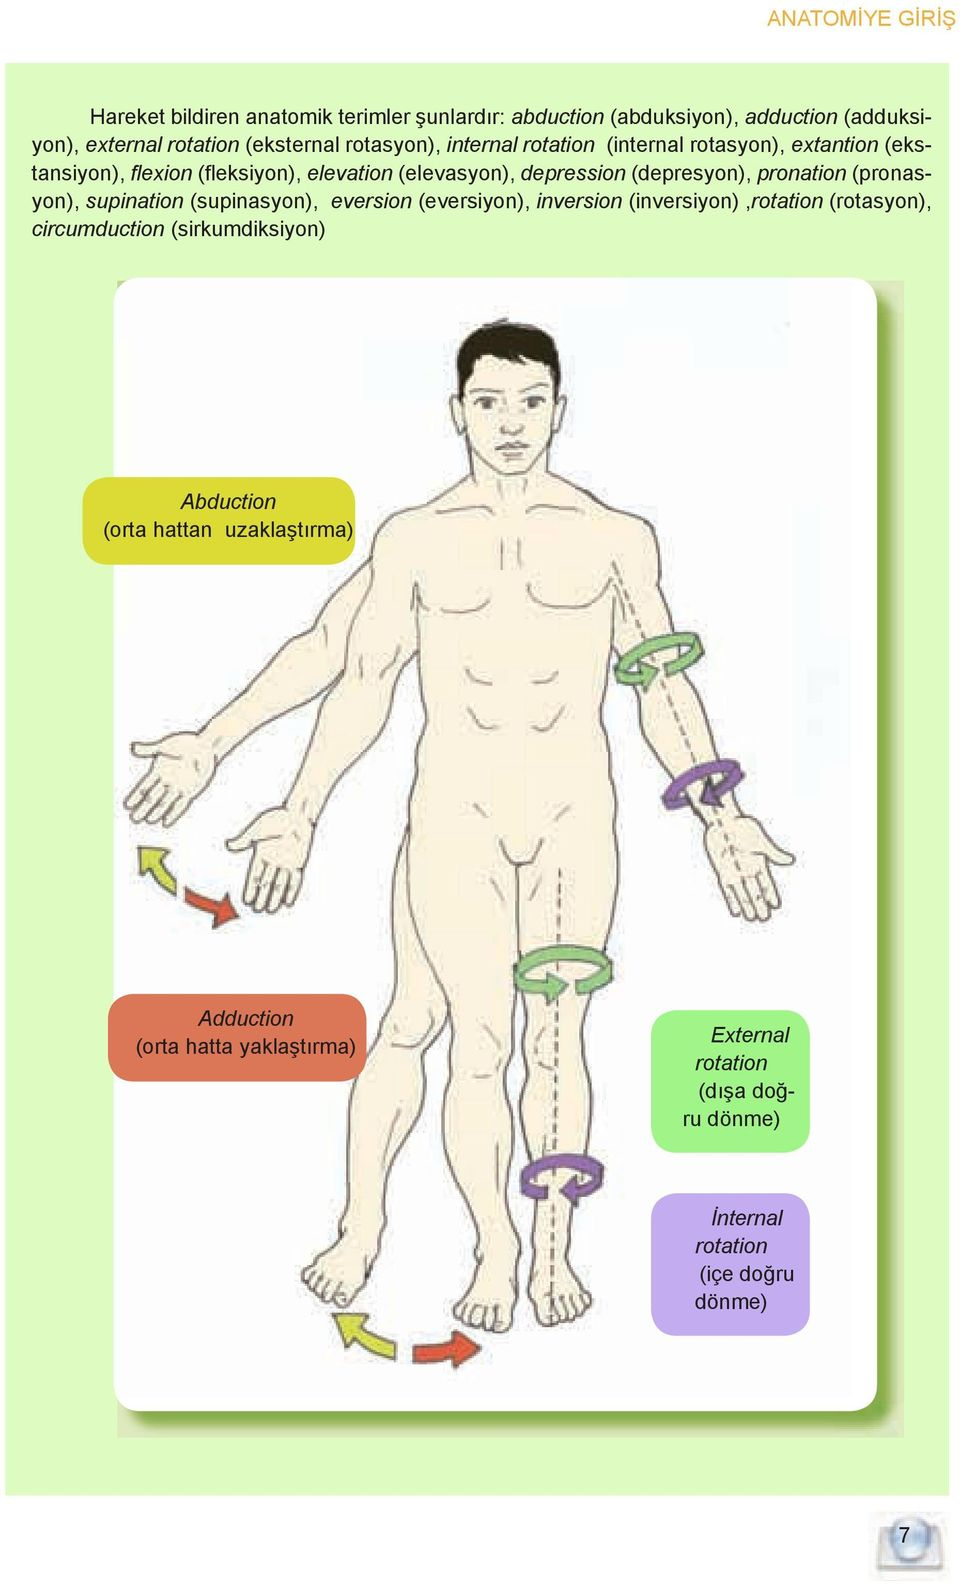 pronation (pronasyon), supination (supinasyon), eversion (eversiyon), inversion (inversiyon),rotation (rotasyon), circumduction